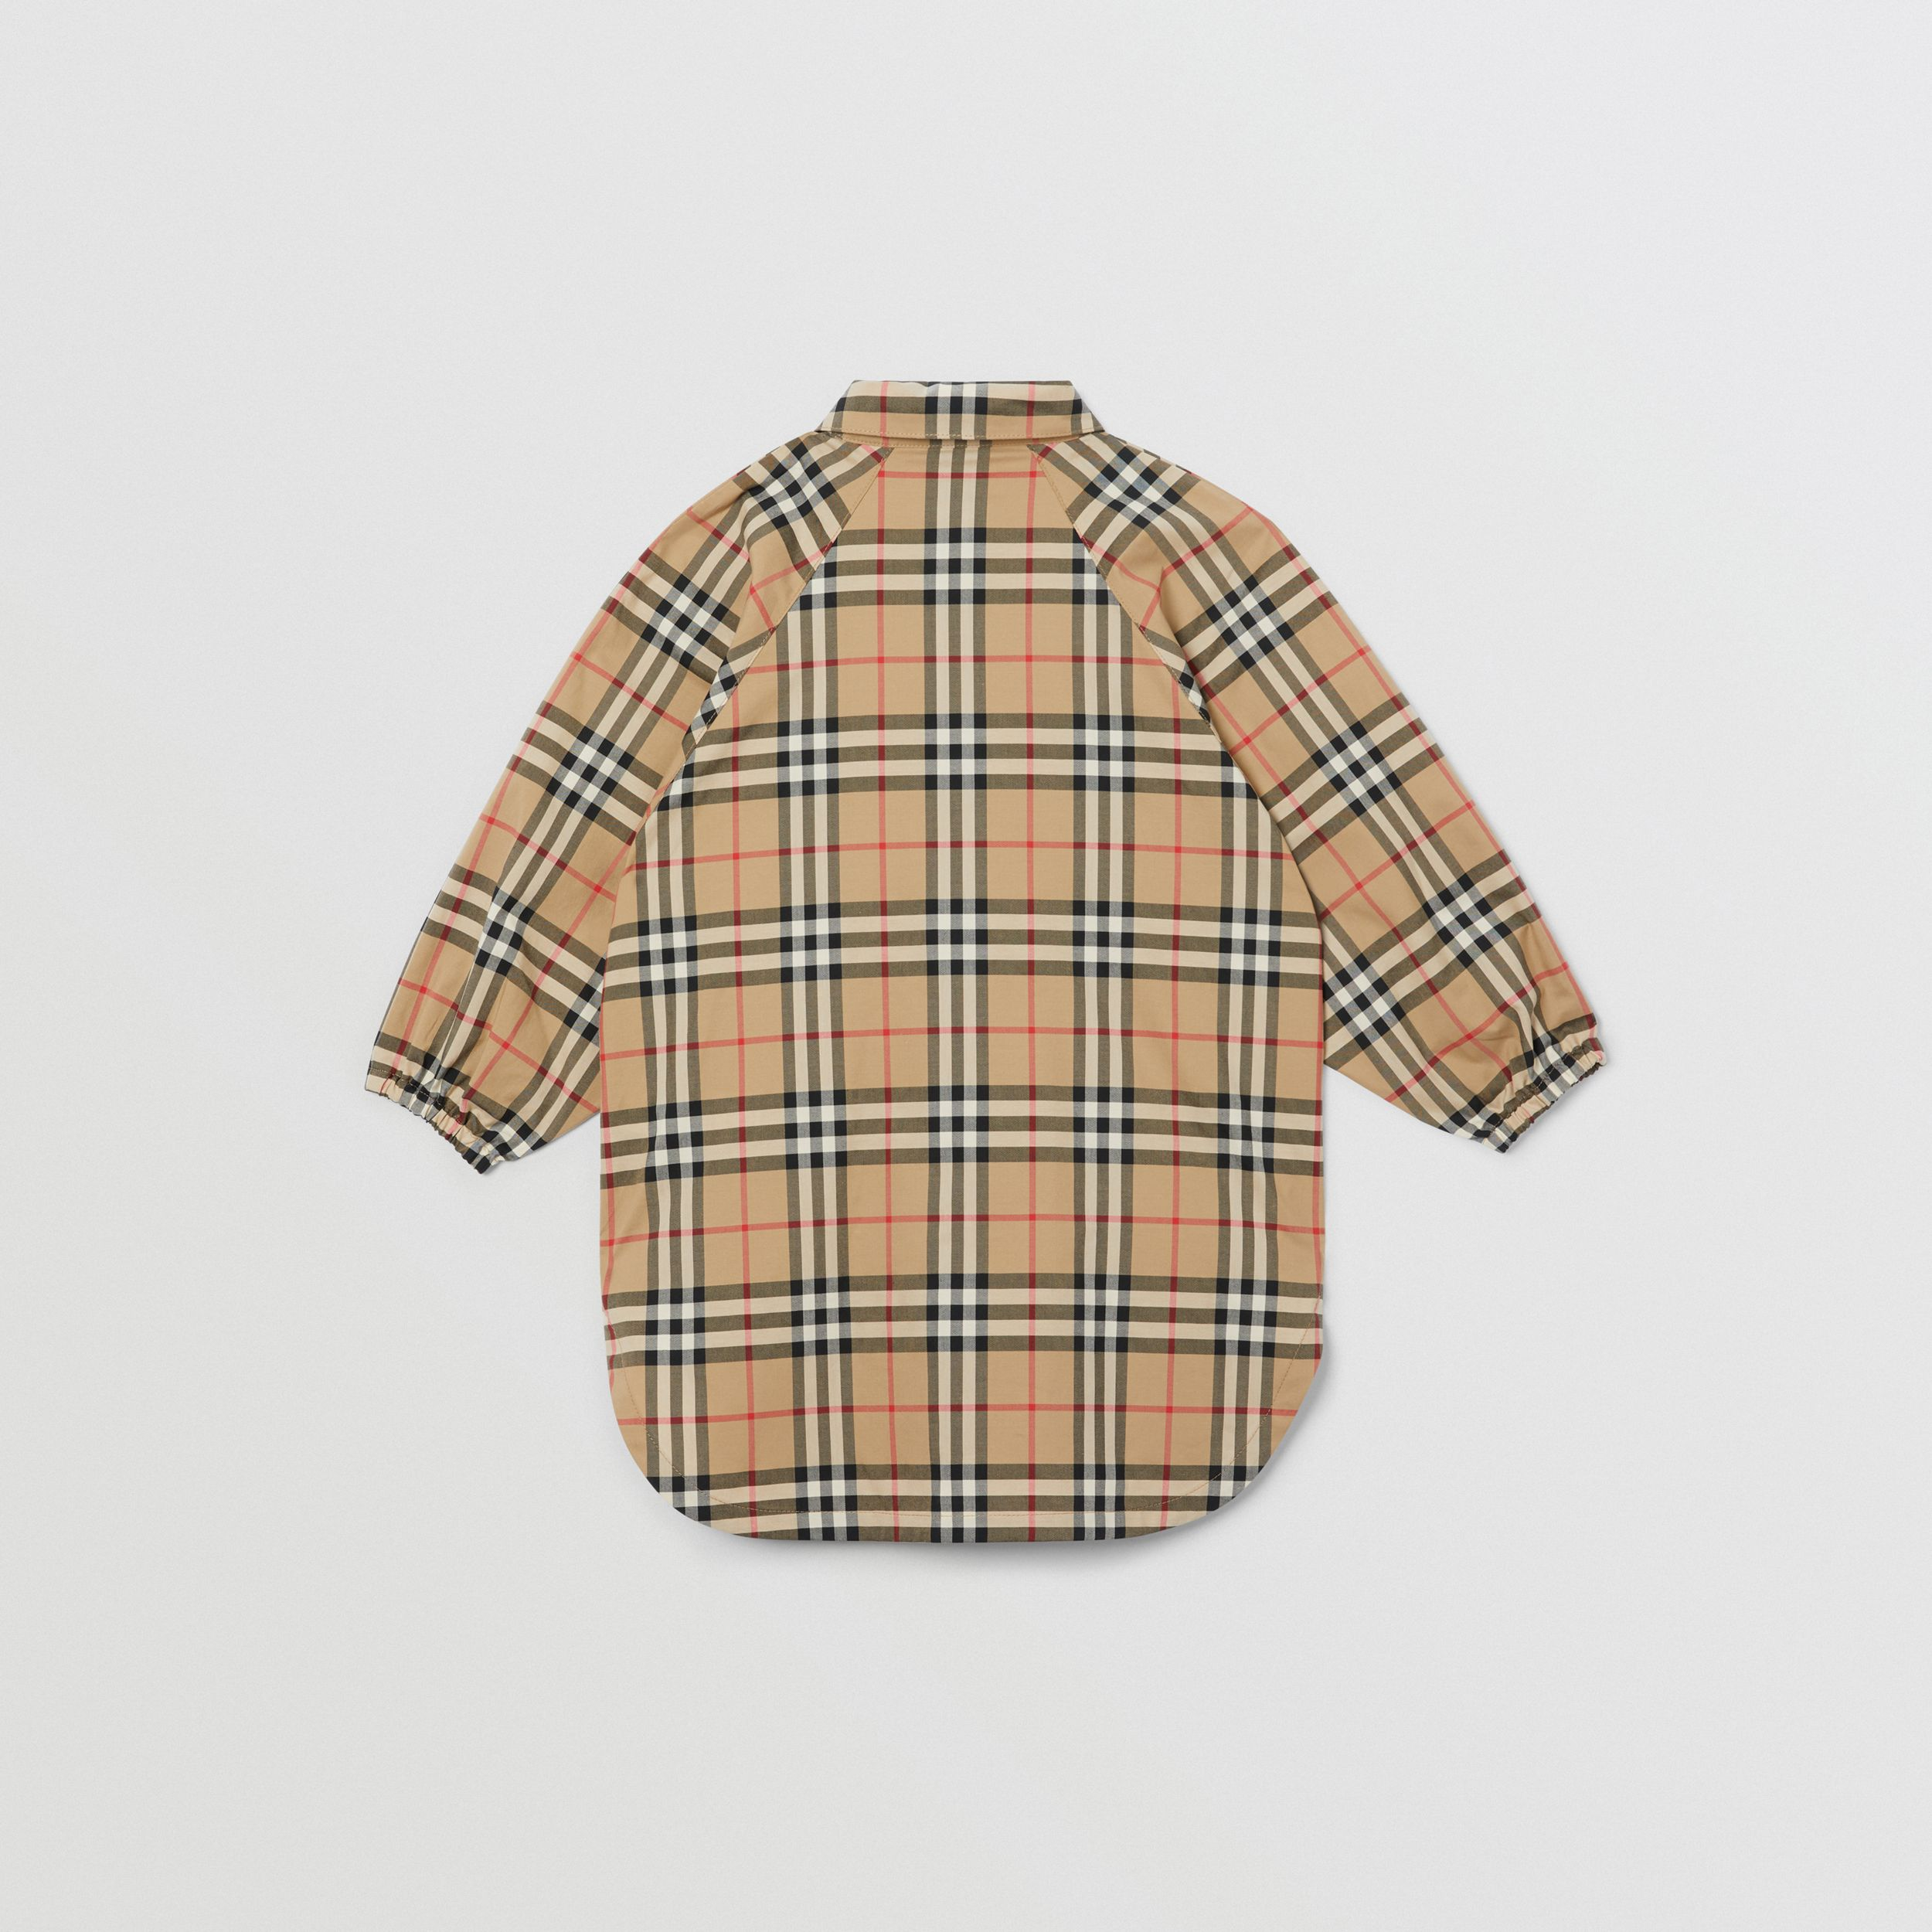 Vintage Check Cotton Shirt Dress in Archive Beige | Burberry - 4